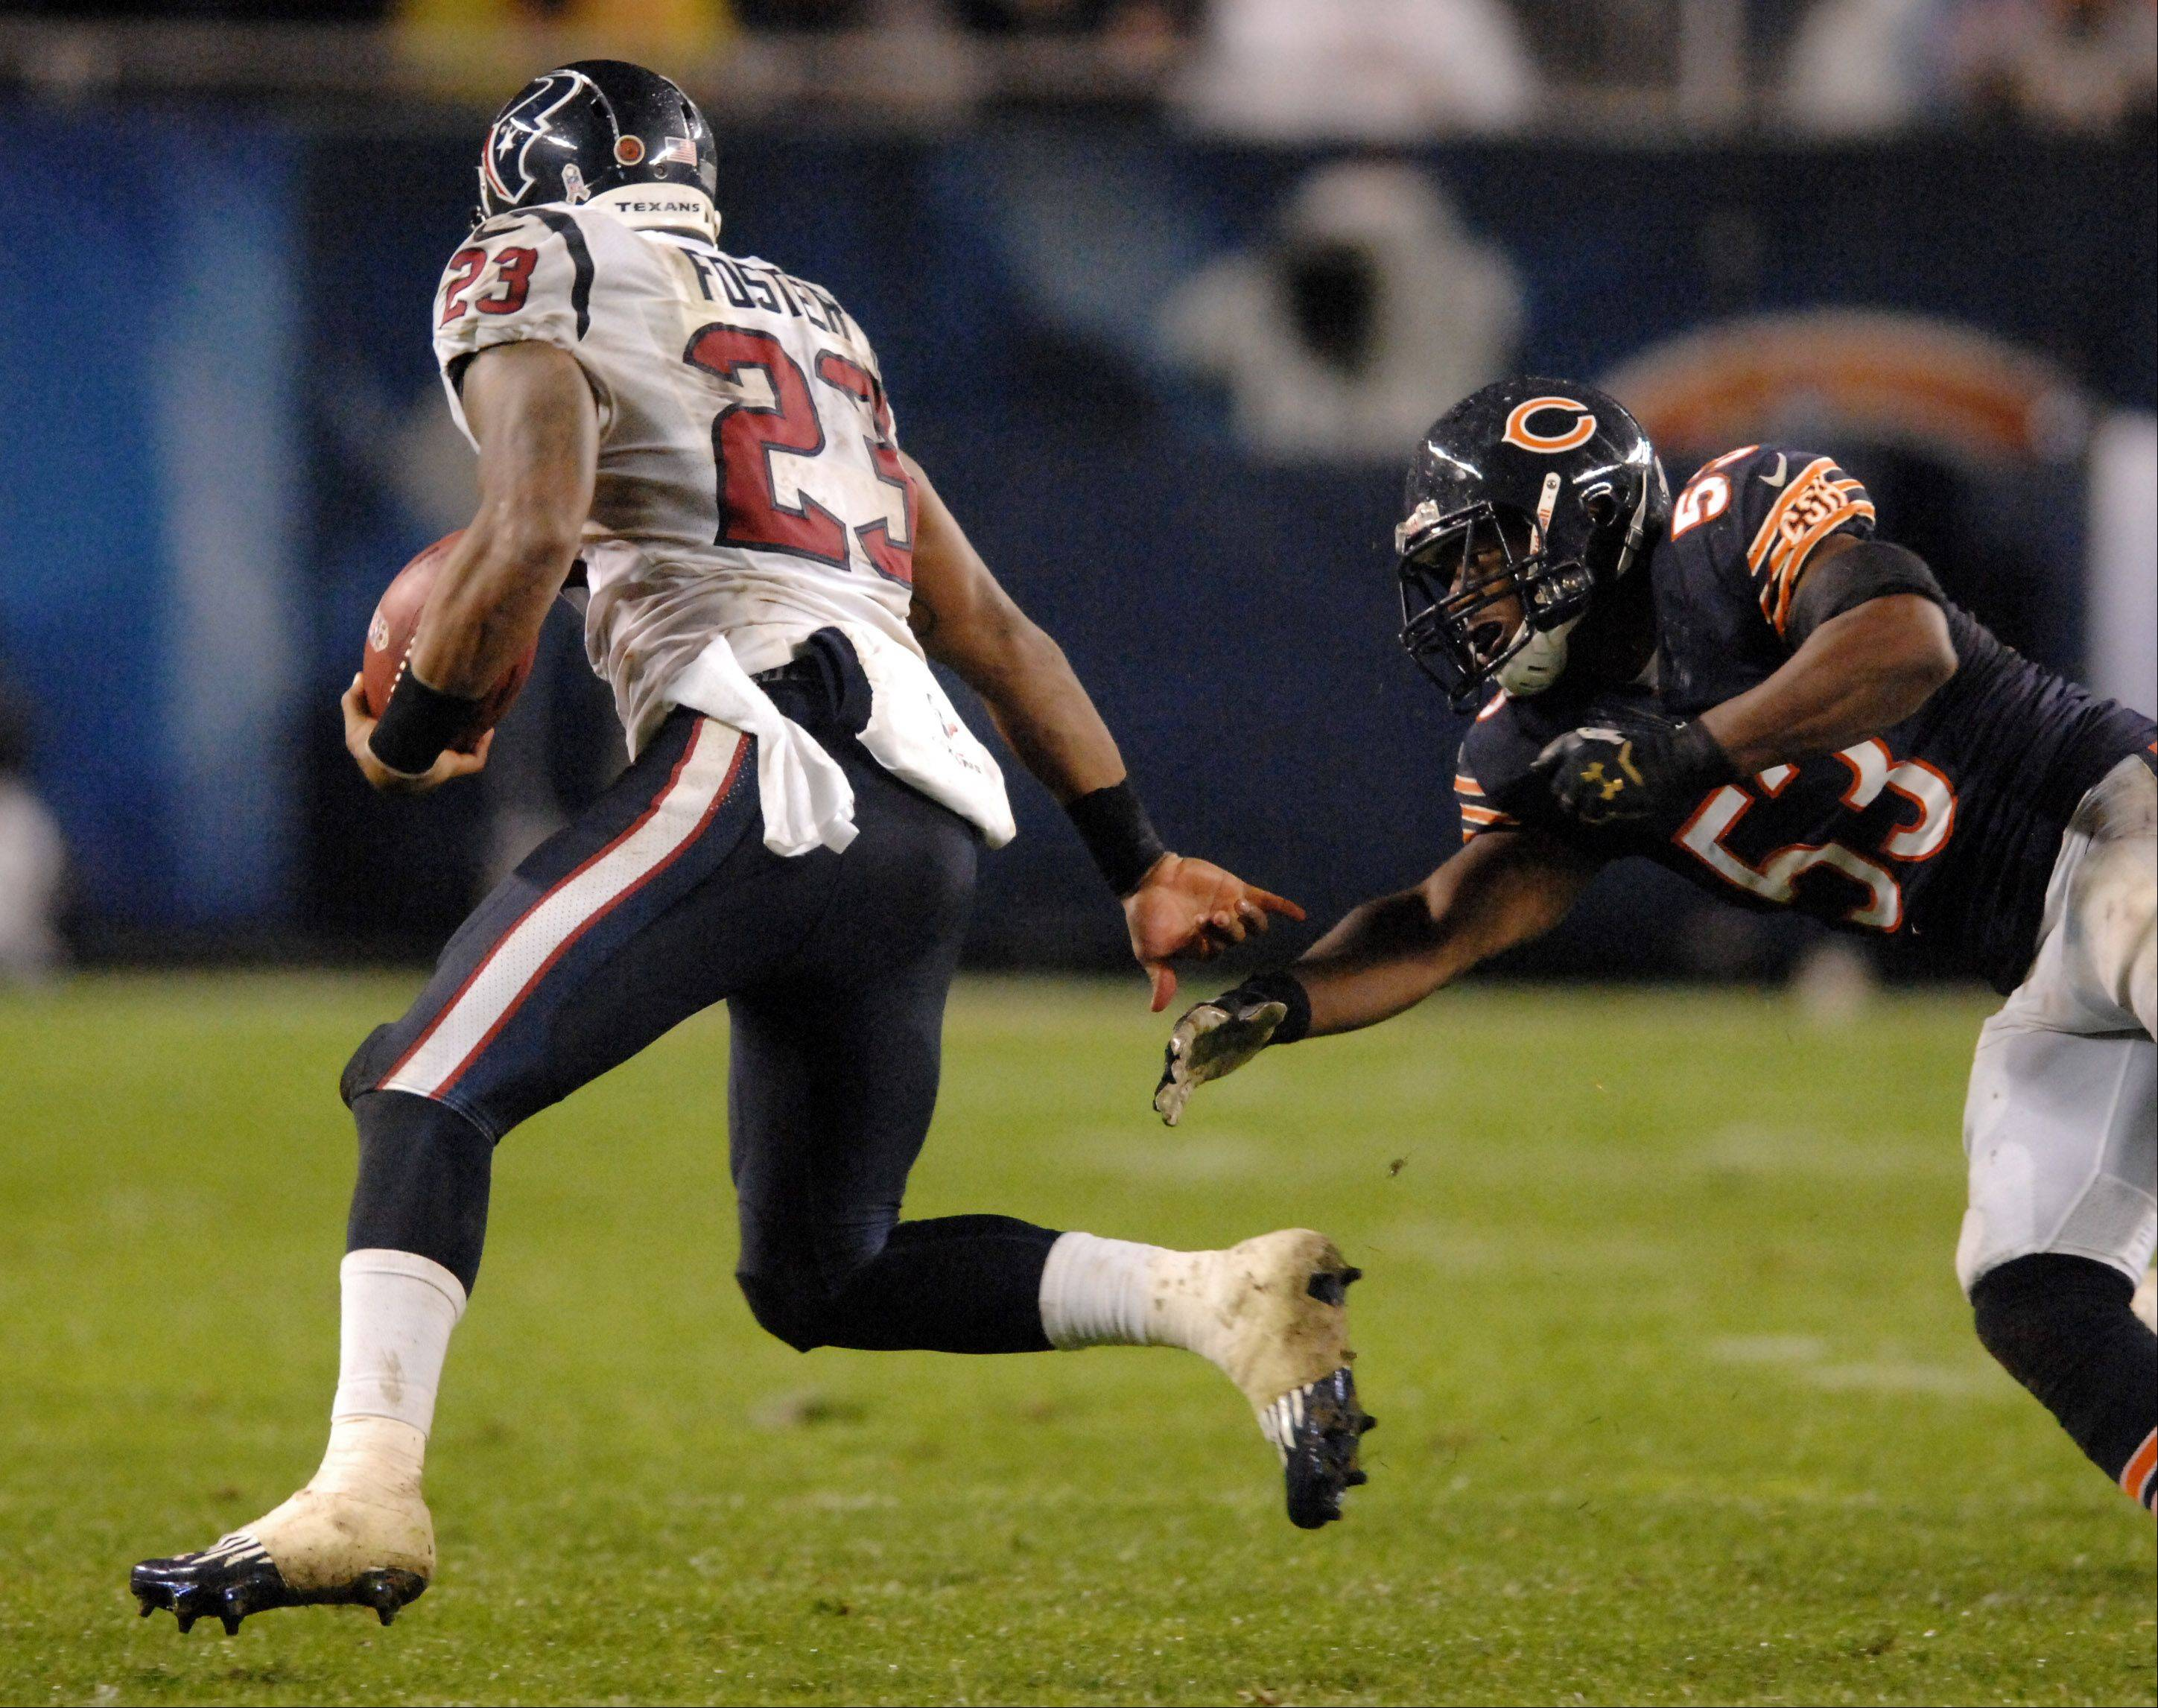 Houston Texans running back Arian Foster (23) shrugs aside an attempted tackle by Chicago Bears outside linebacker Nick Roach (53) for a big second quarter gain during Sunday's game at Soldier Field in Chicago.